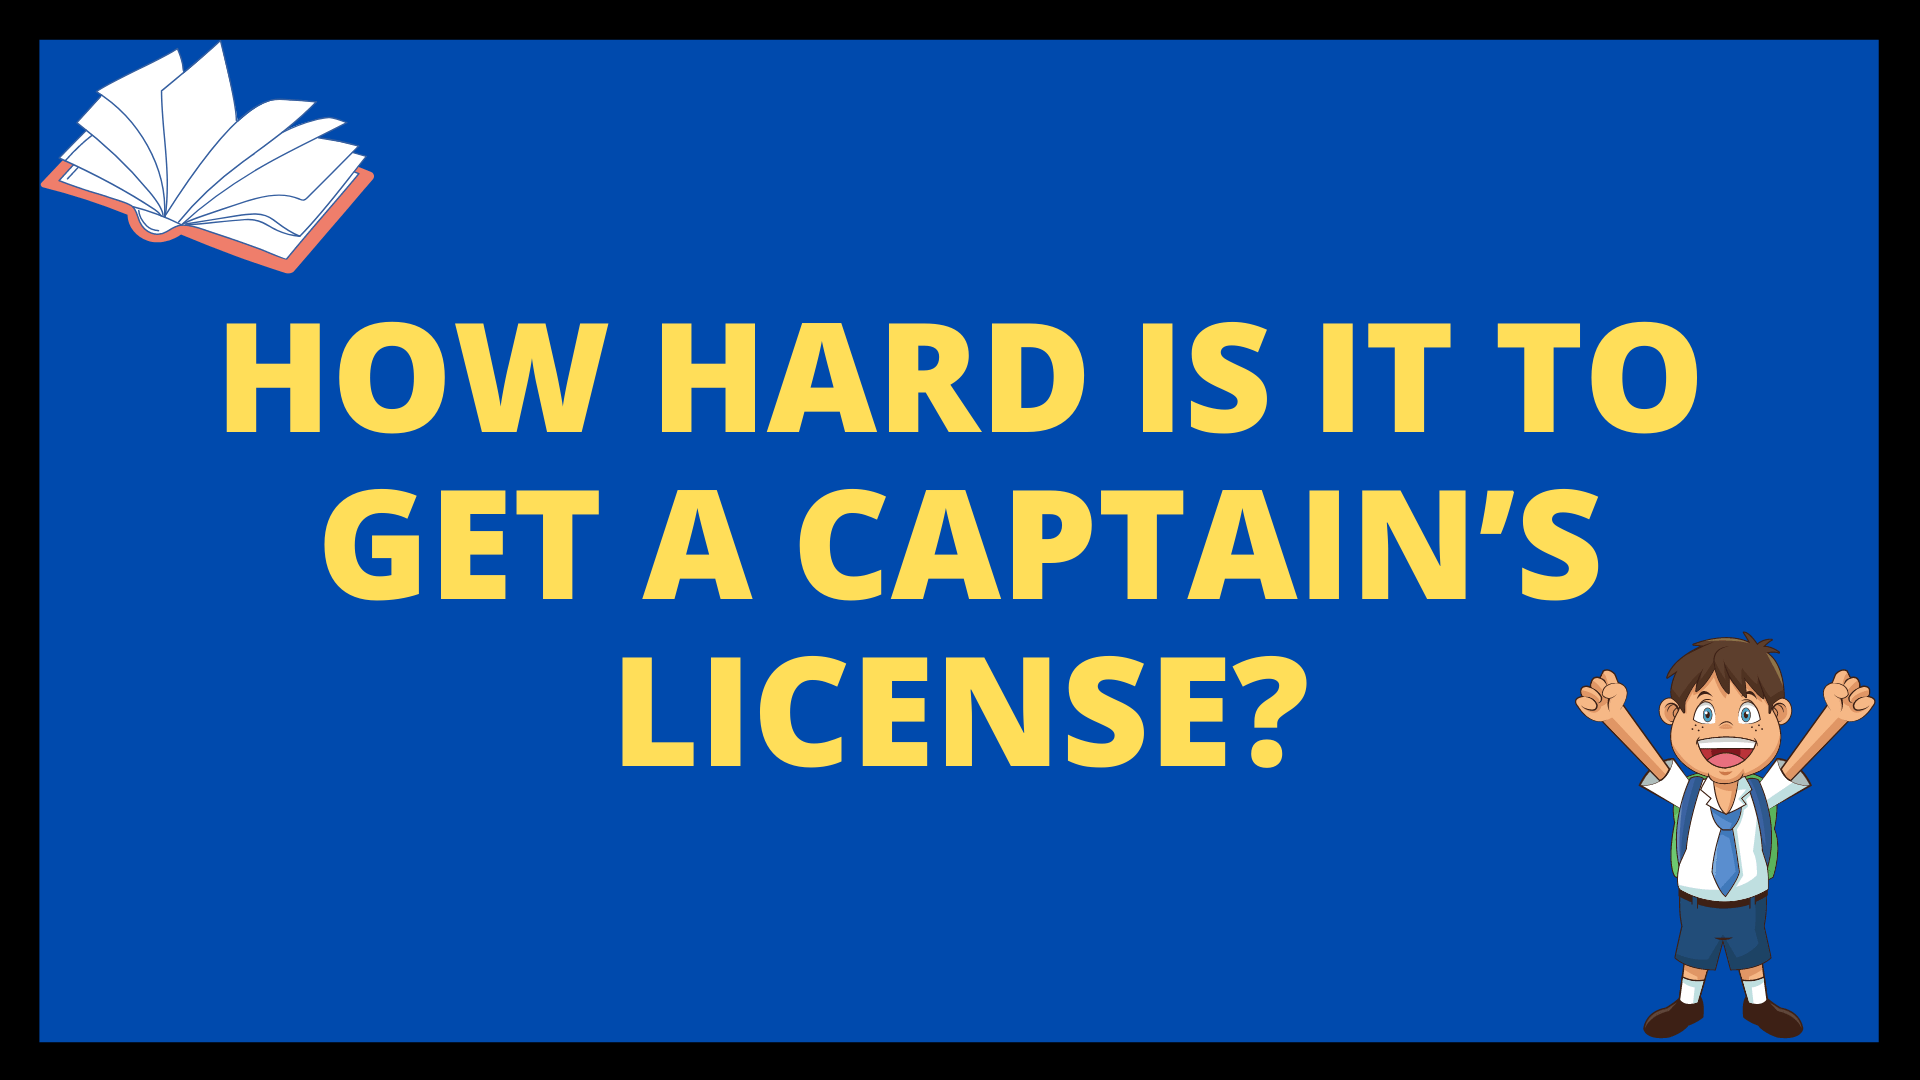 How Hard Is It To Get A Captain's License?